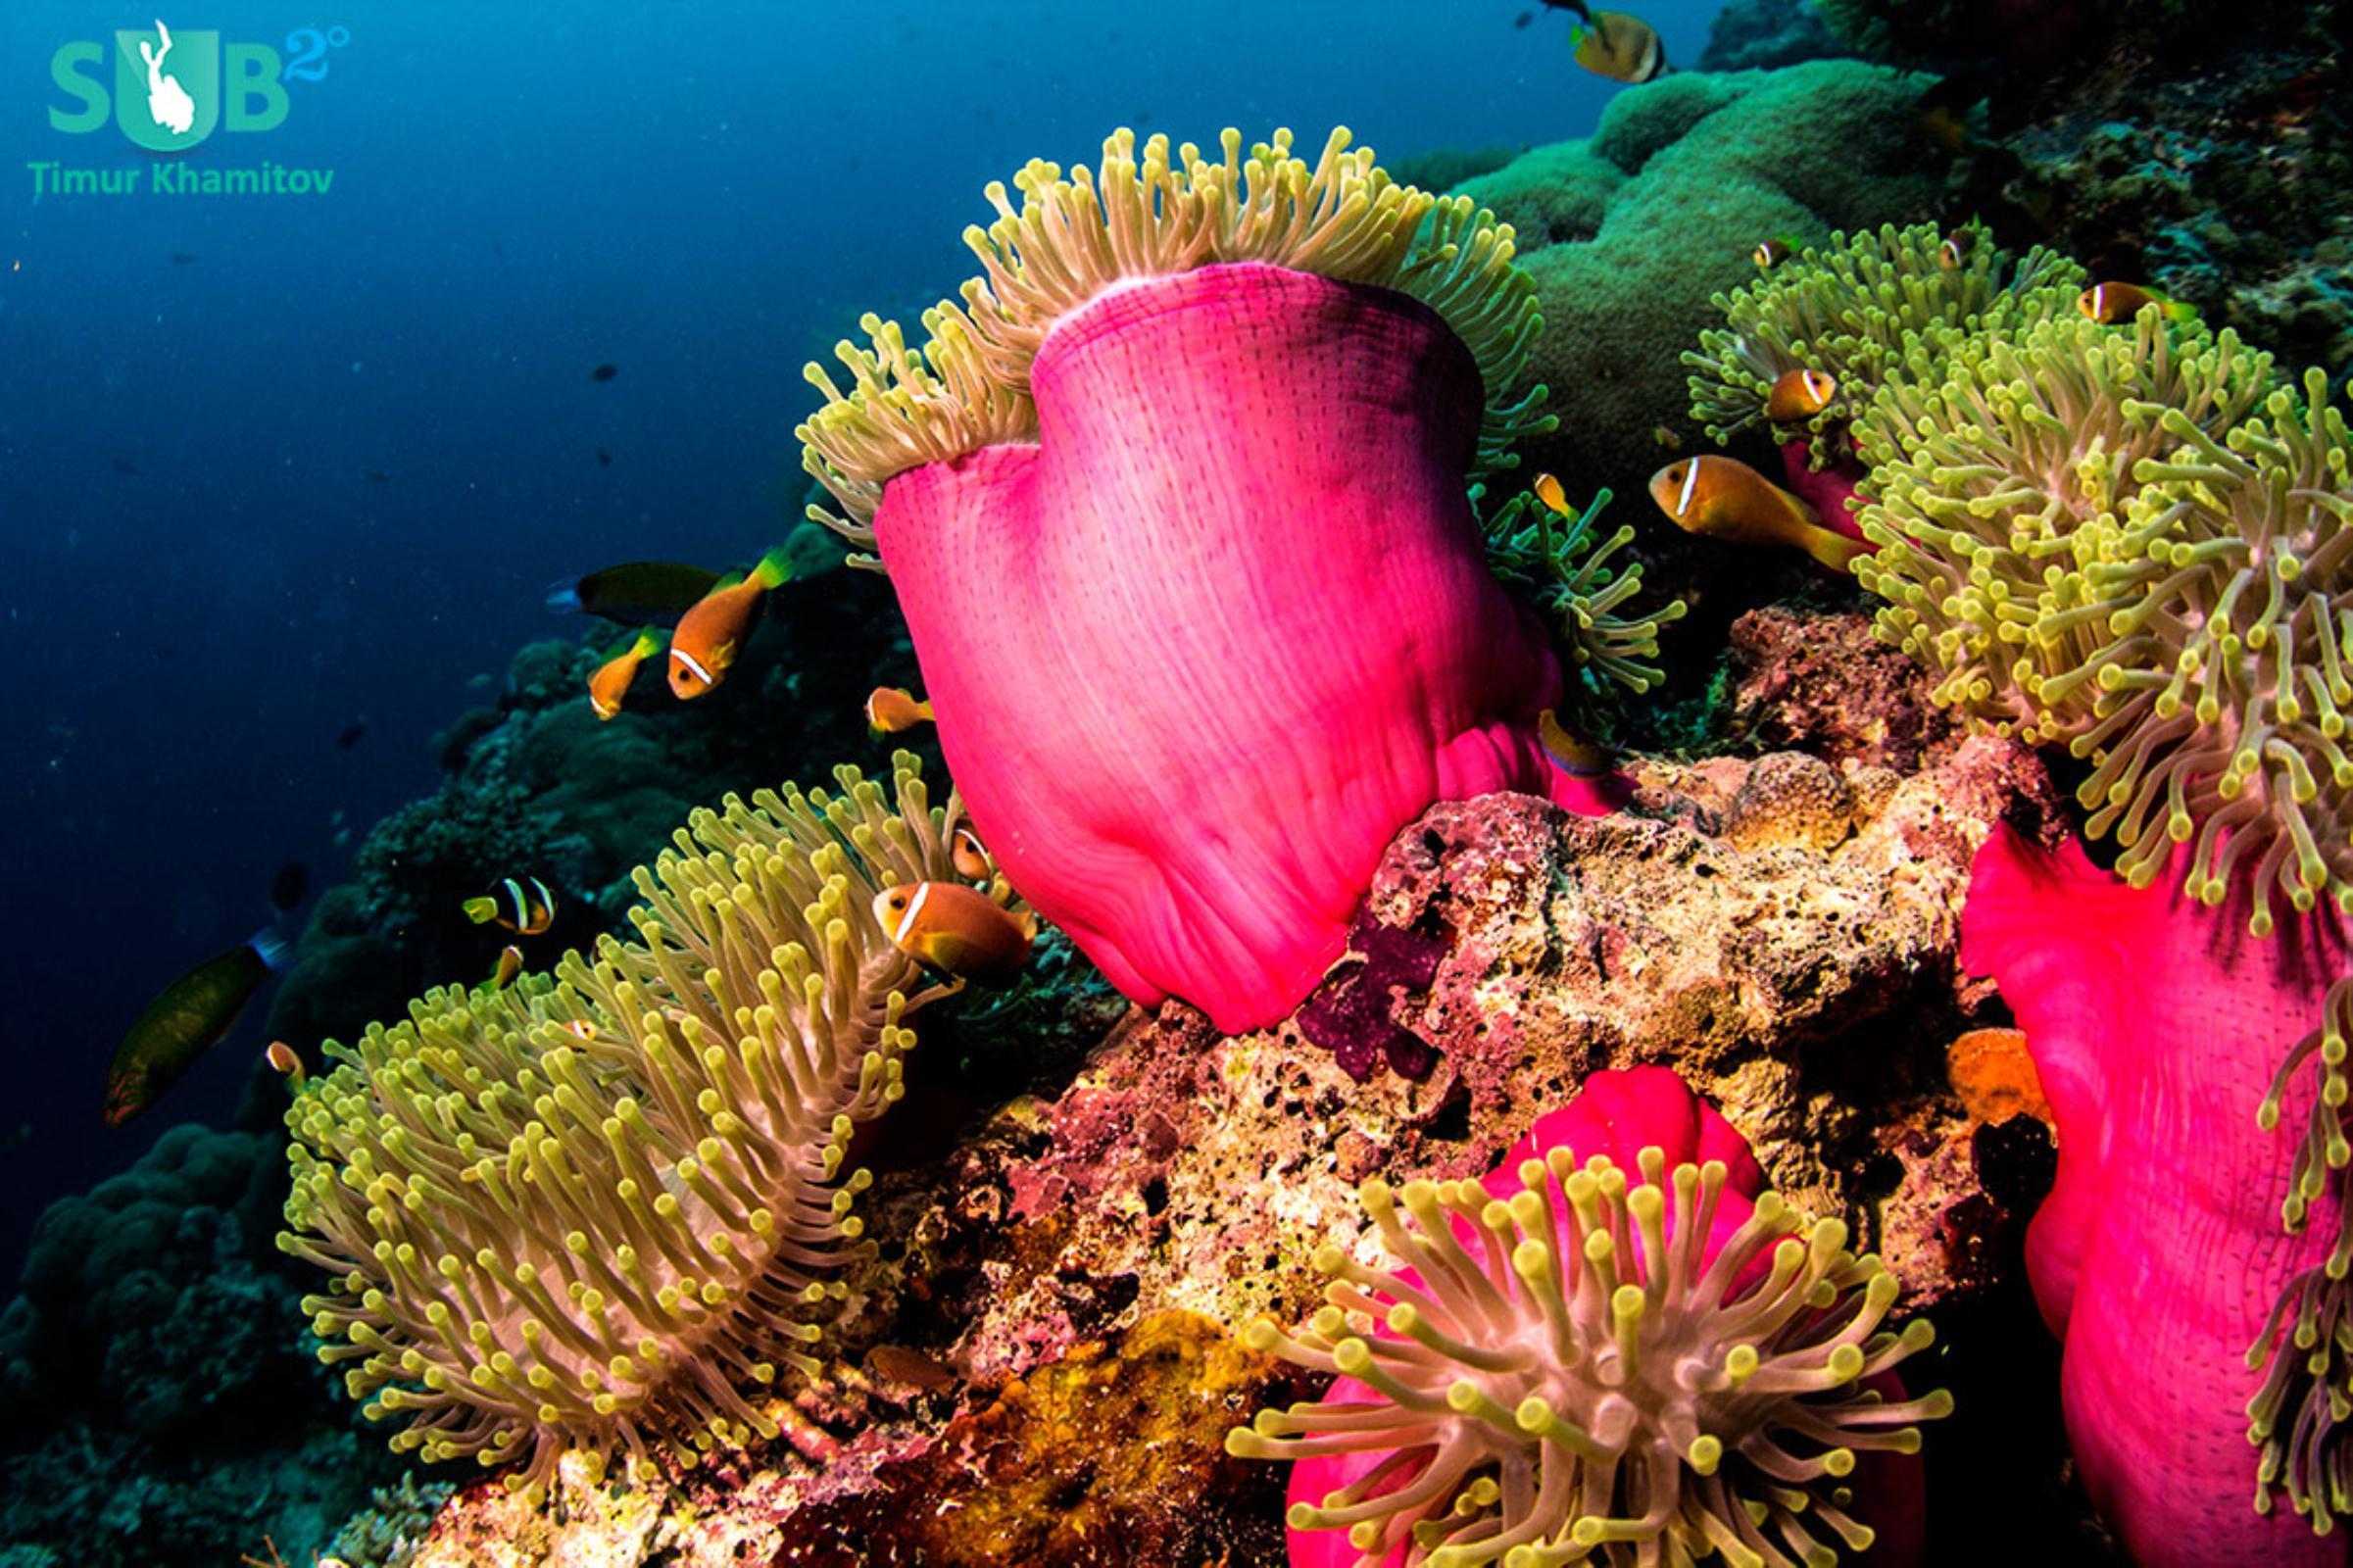 You'll find beautiful, healthy and colorful corals growing underwater in Malaysia, coupled with a diverse marine life.